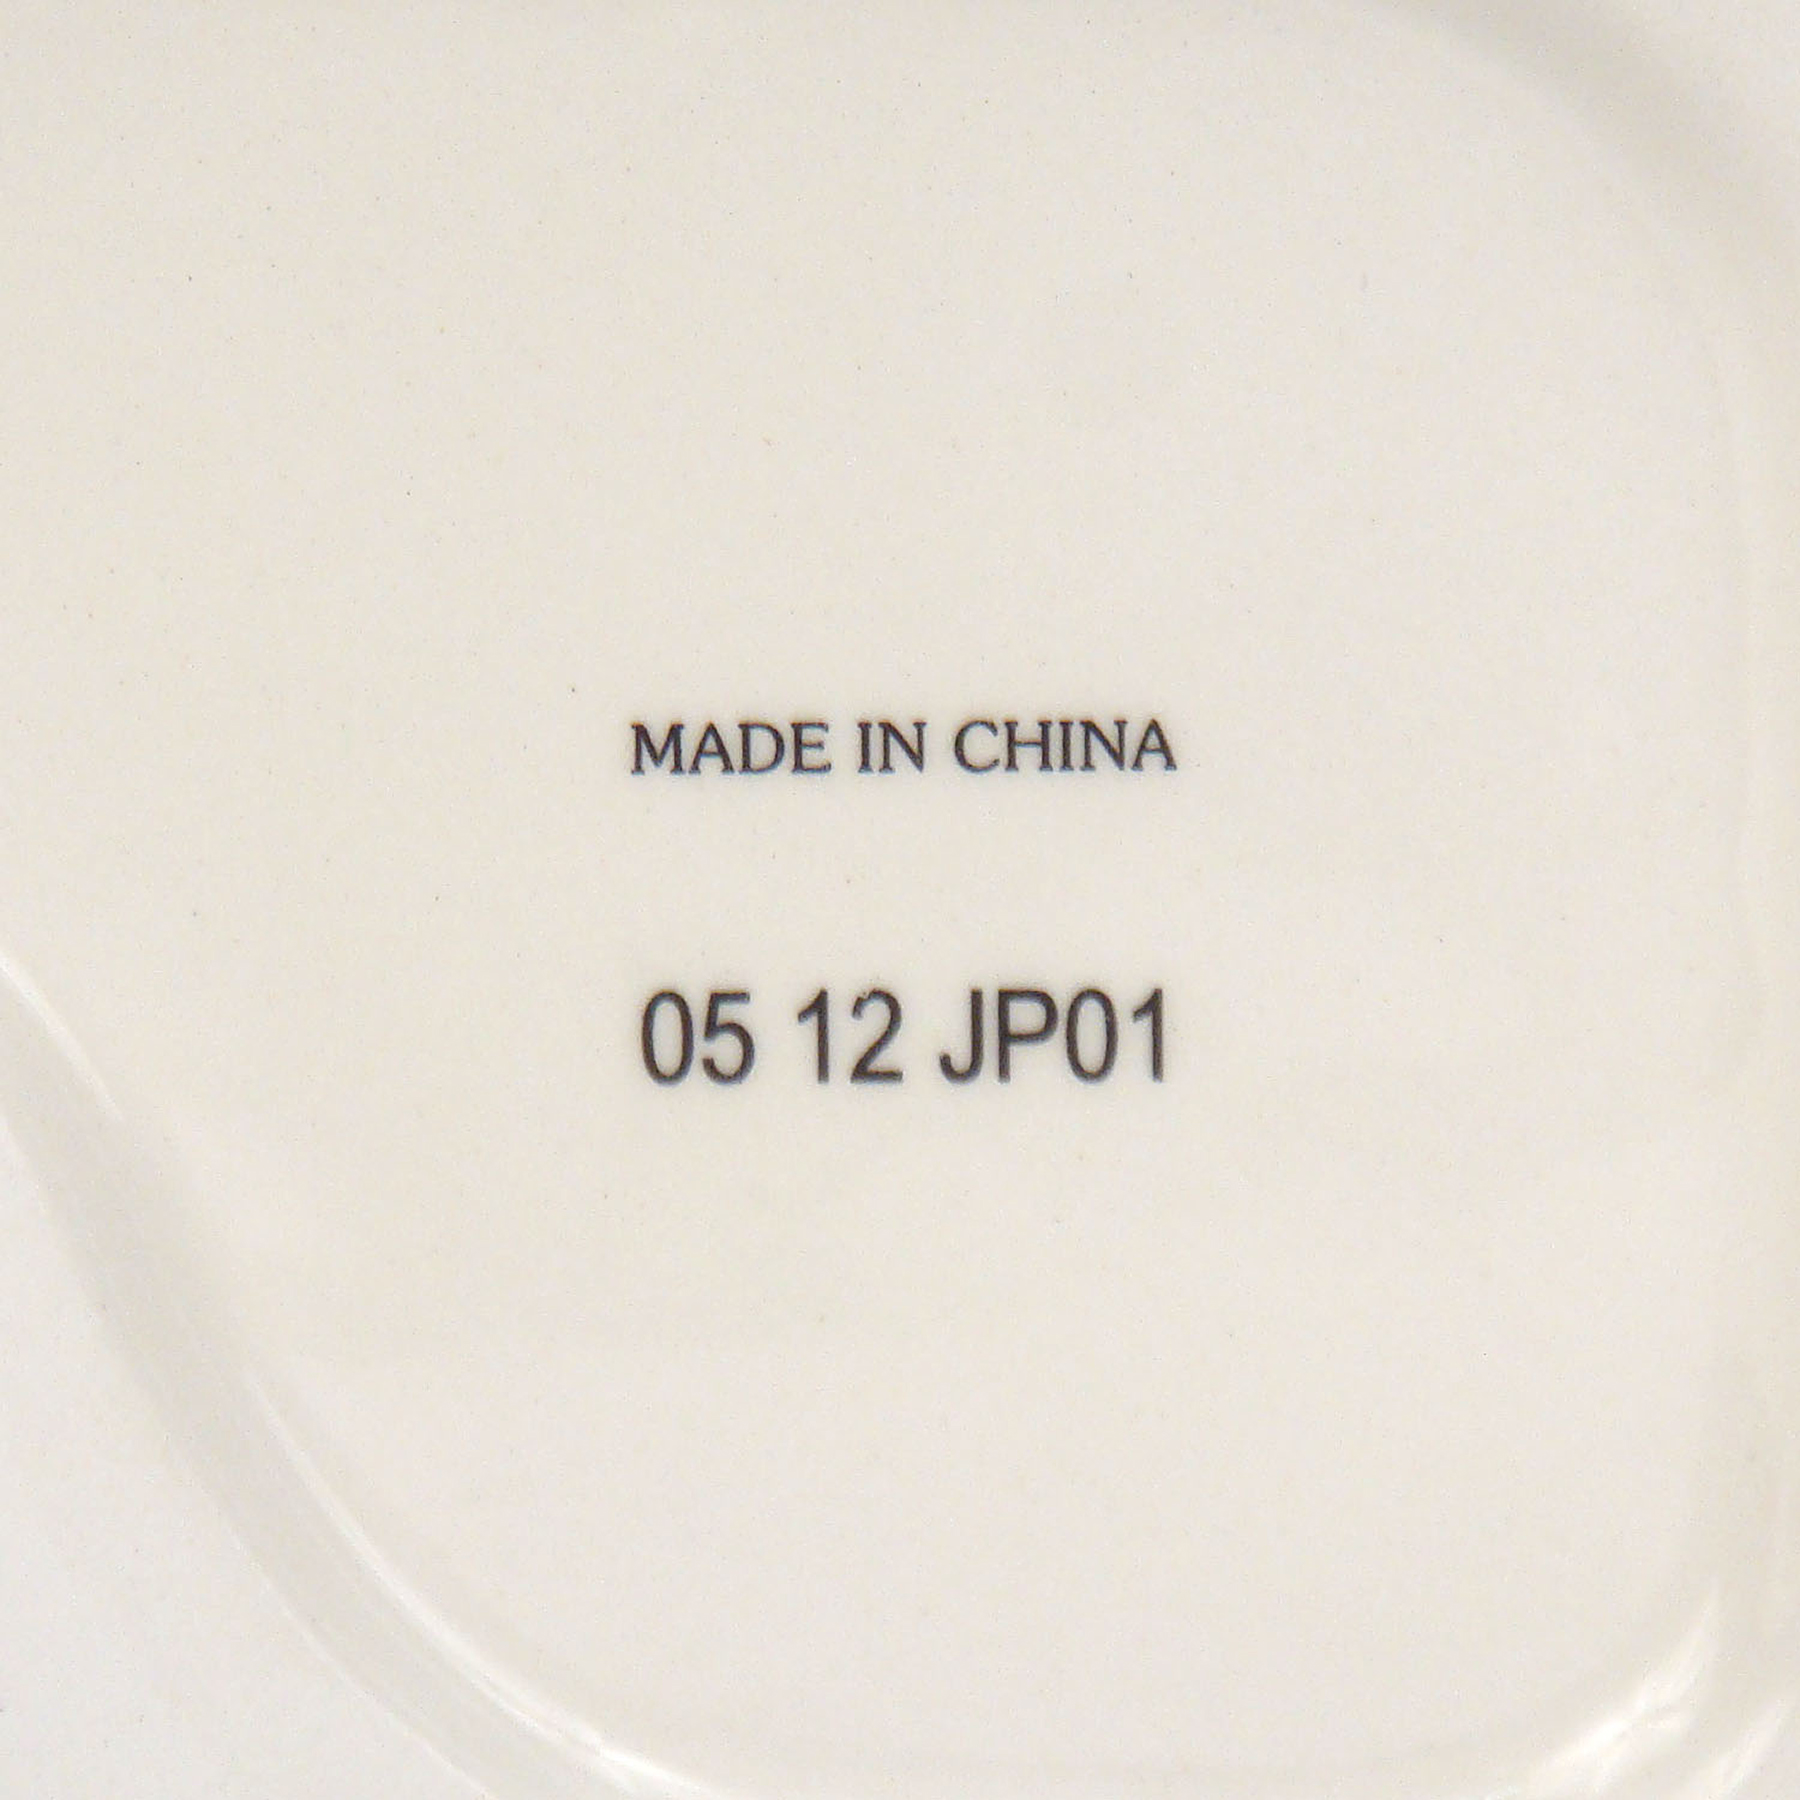 Stamp on the bottom of the ceramic product